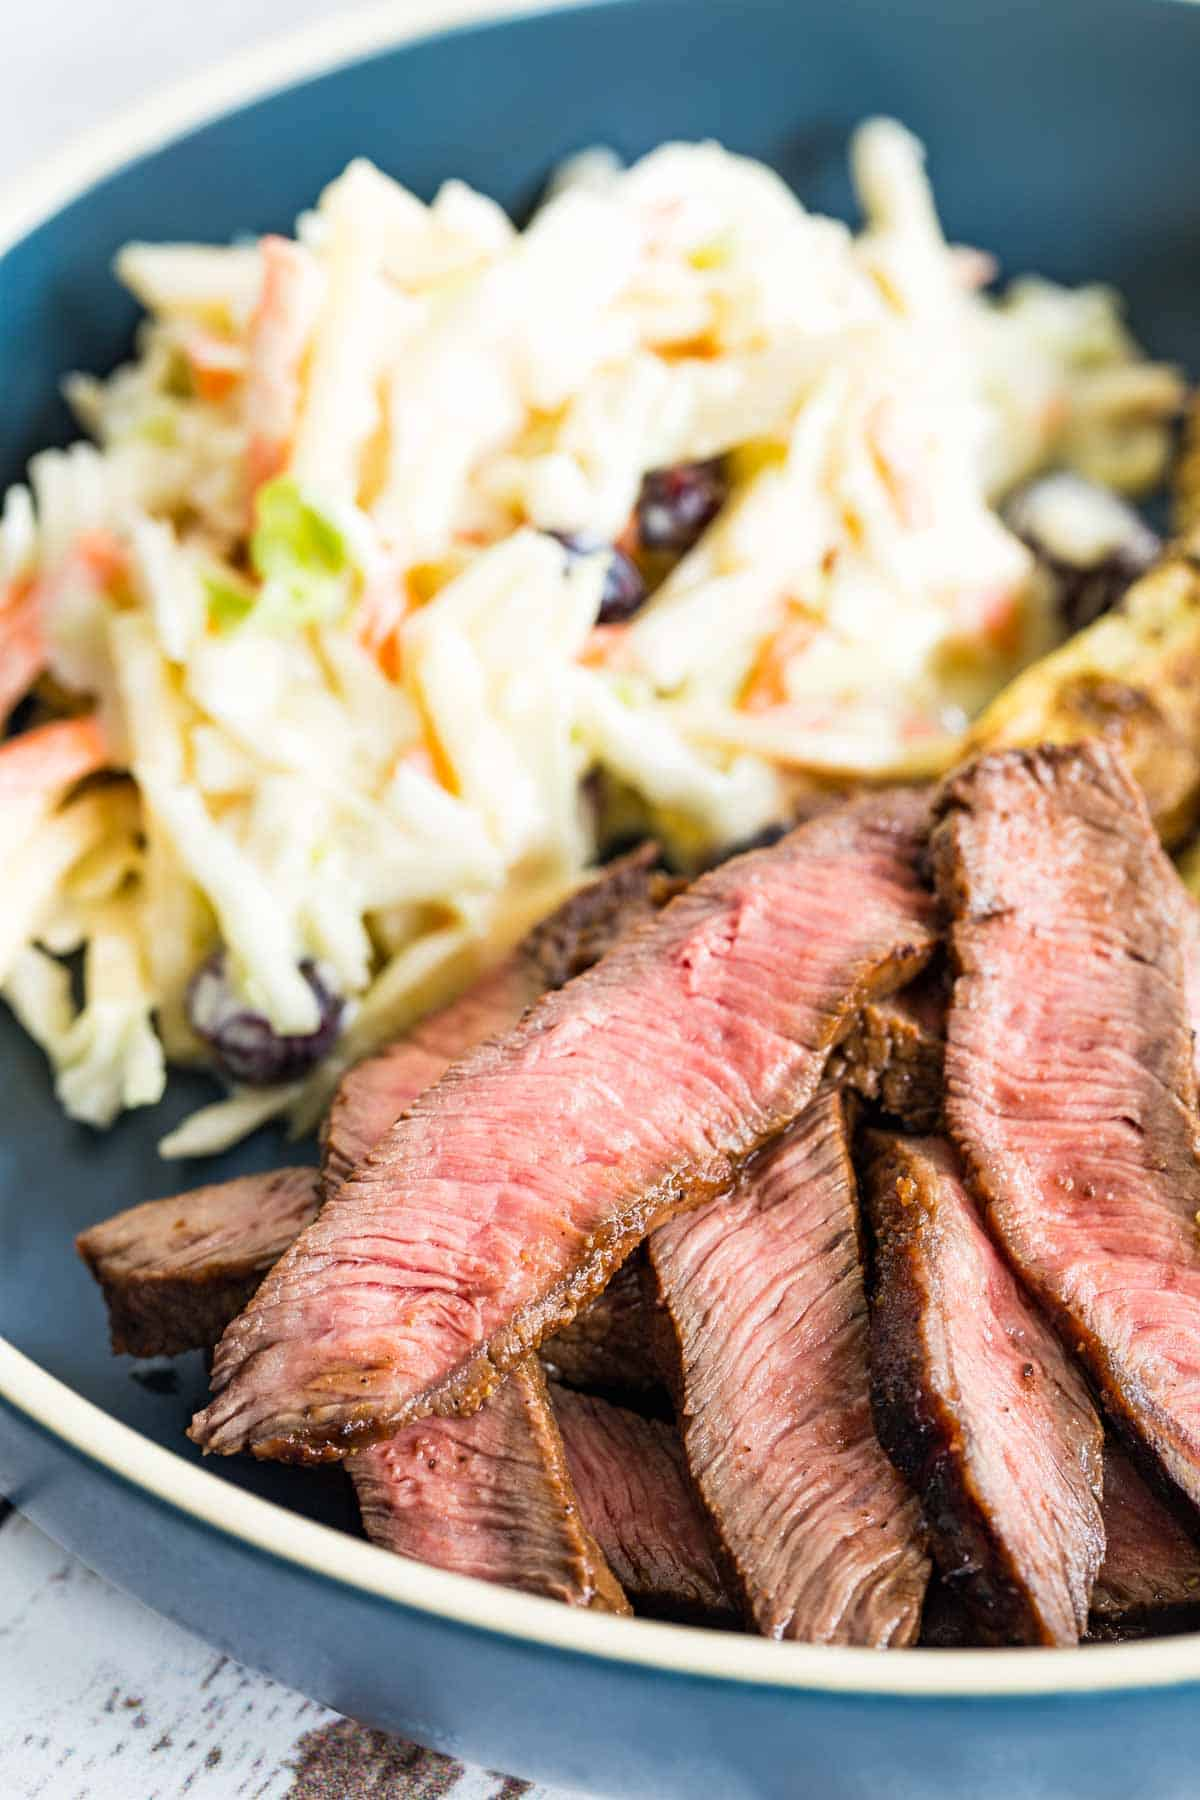 slices of steak on a blue plate with coleslaw